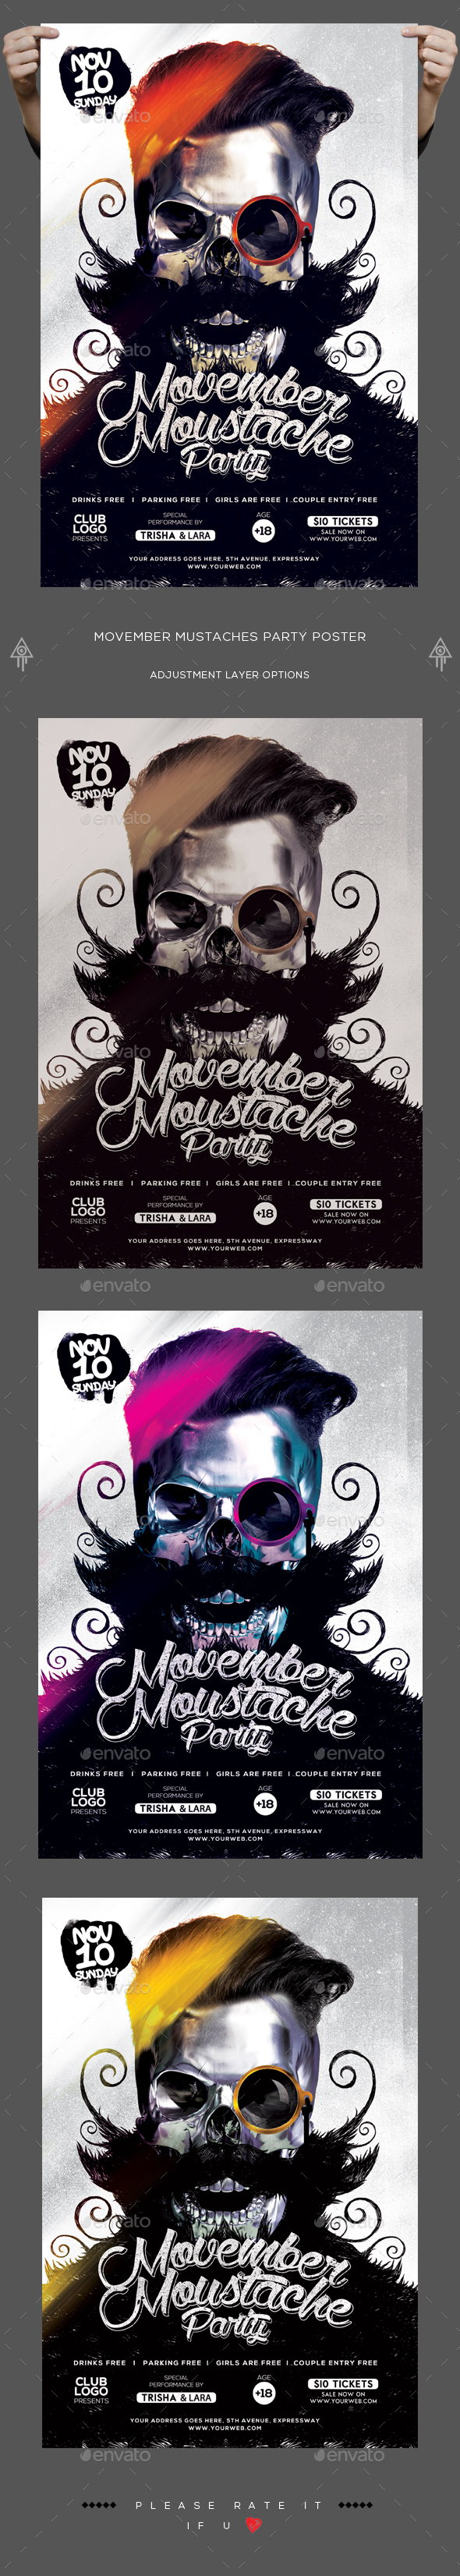 Movember Mustaches Party Poster - Clubs & Parties Events